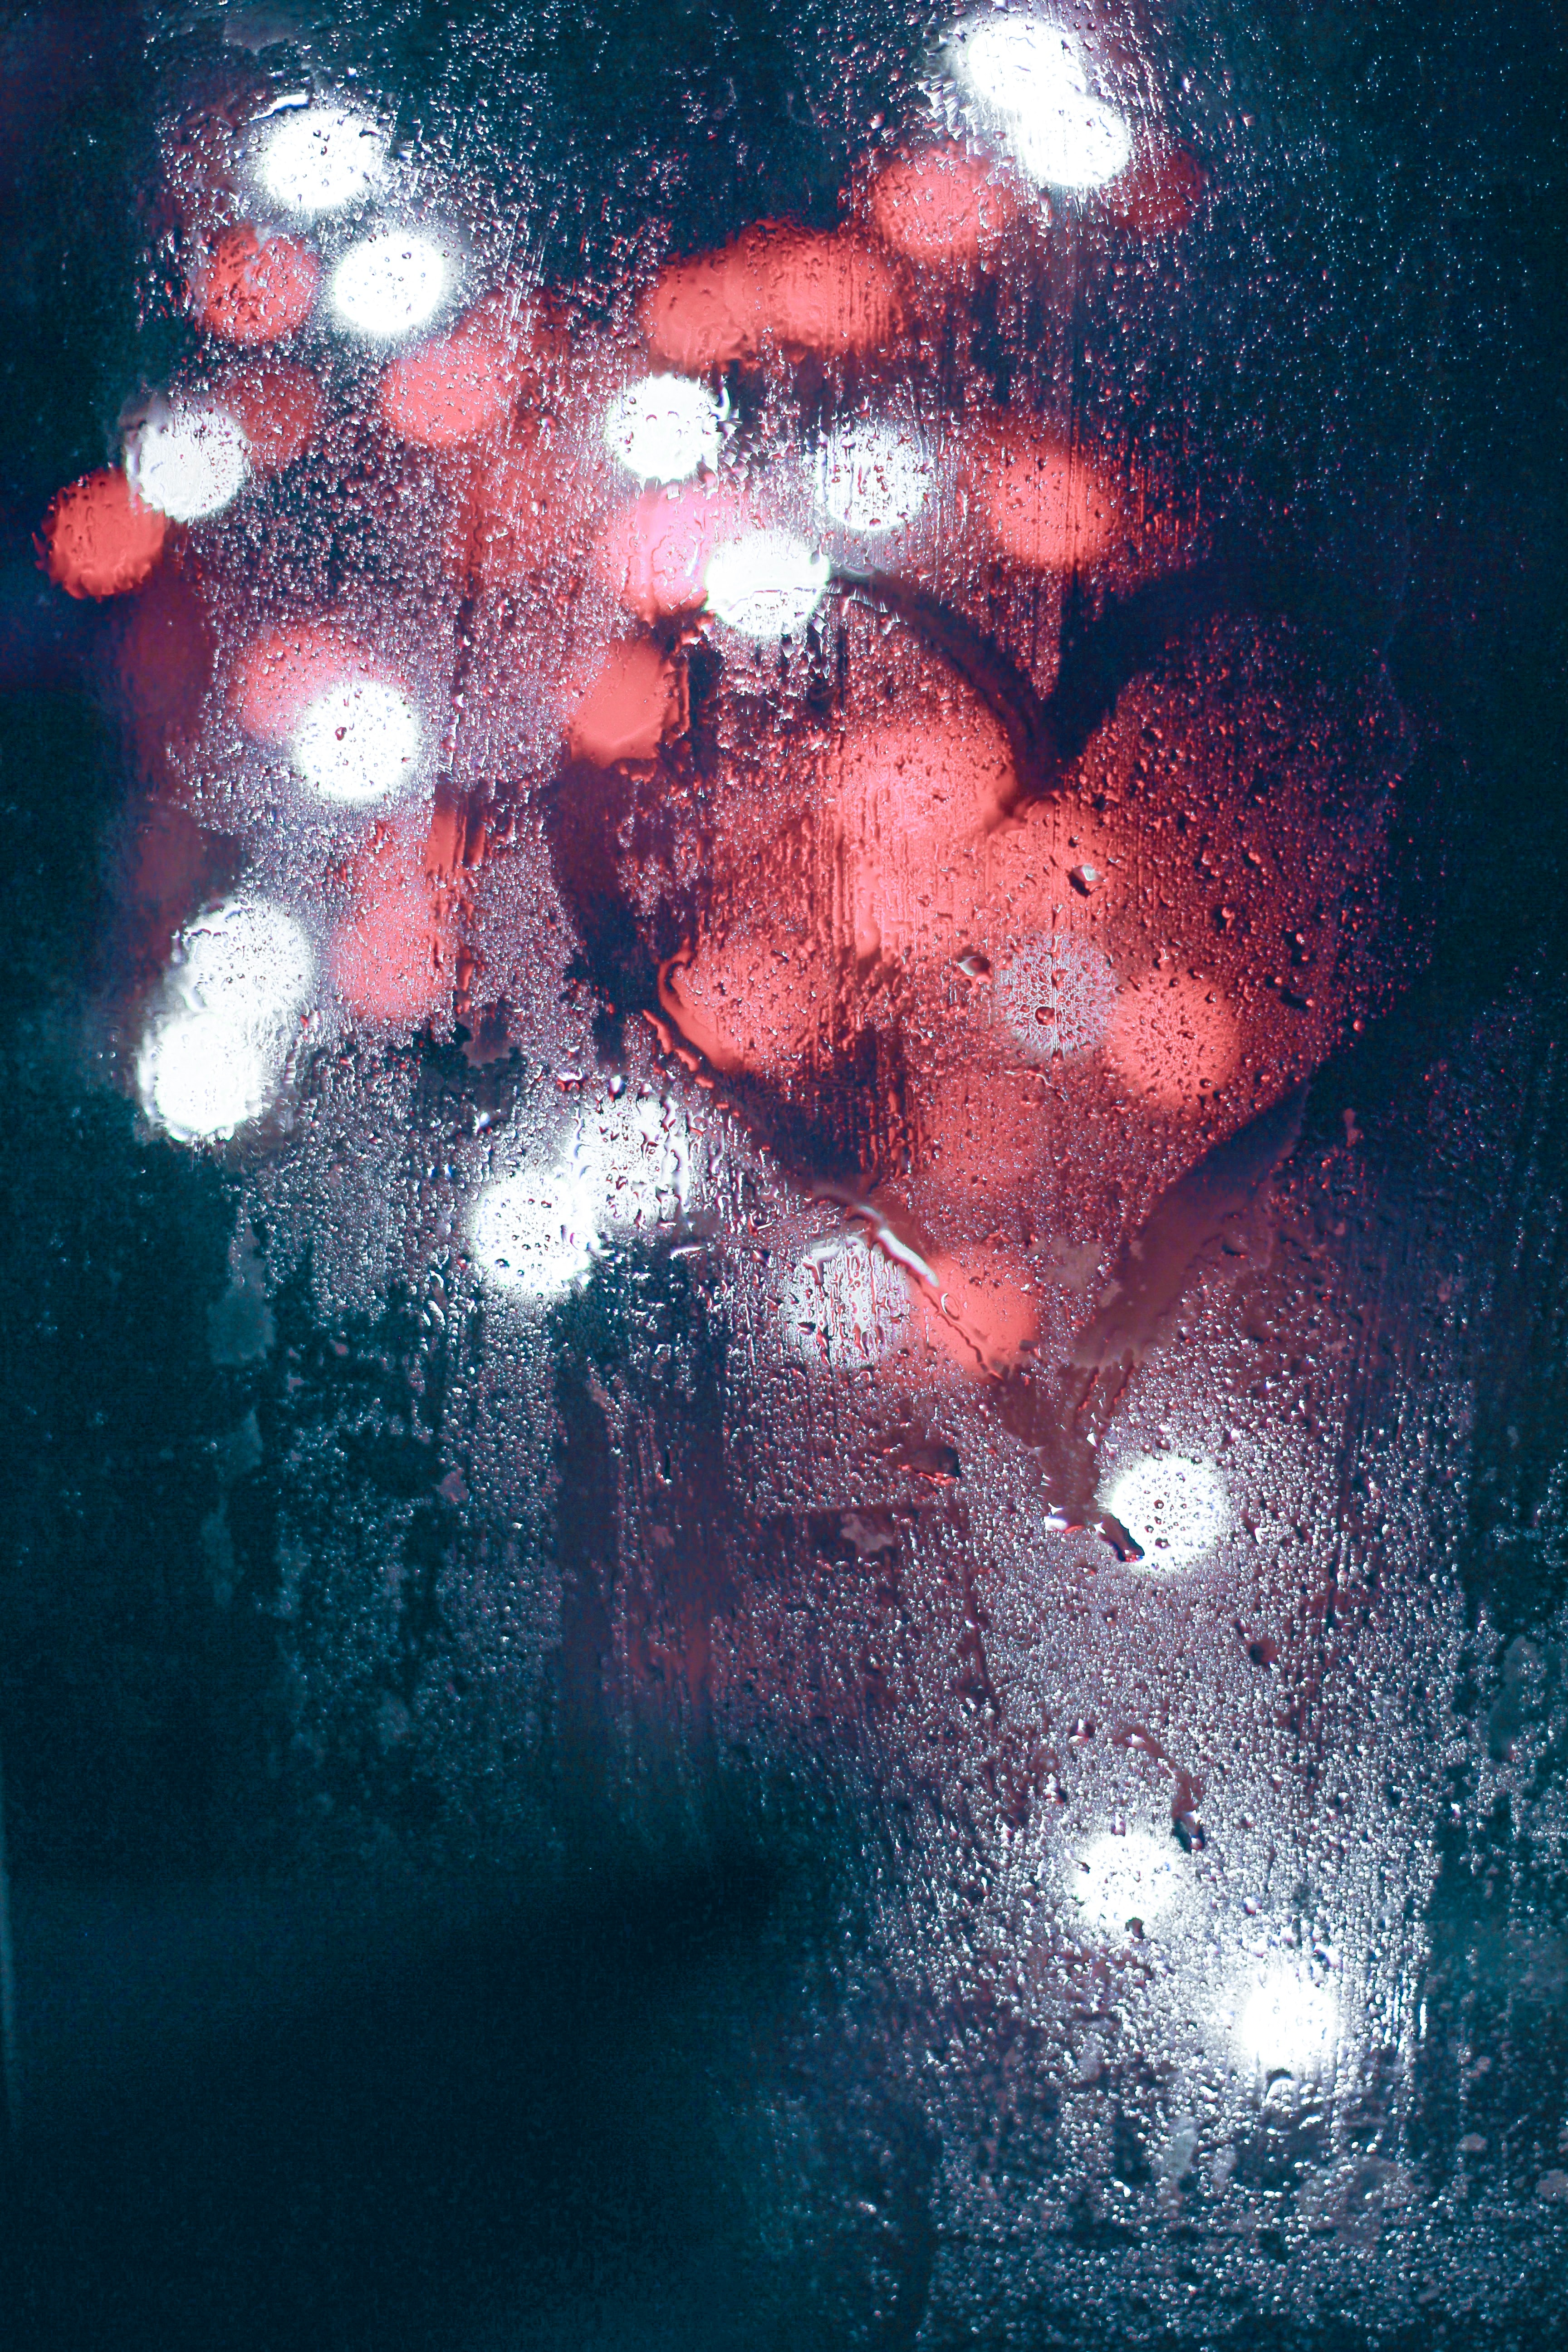 146520 download wallpaper Love, Glass, Wet, Heart, Lights, Blur, Smooth screensavers and pictures for free